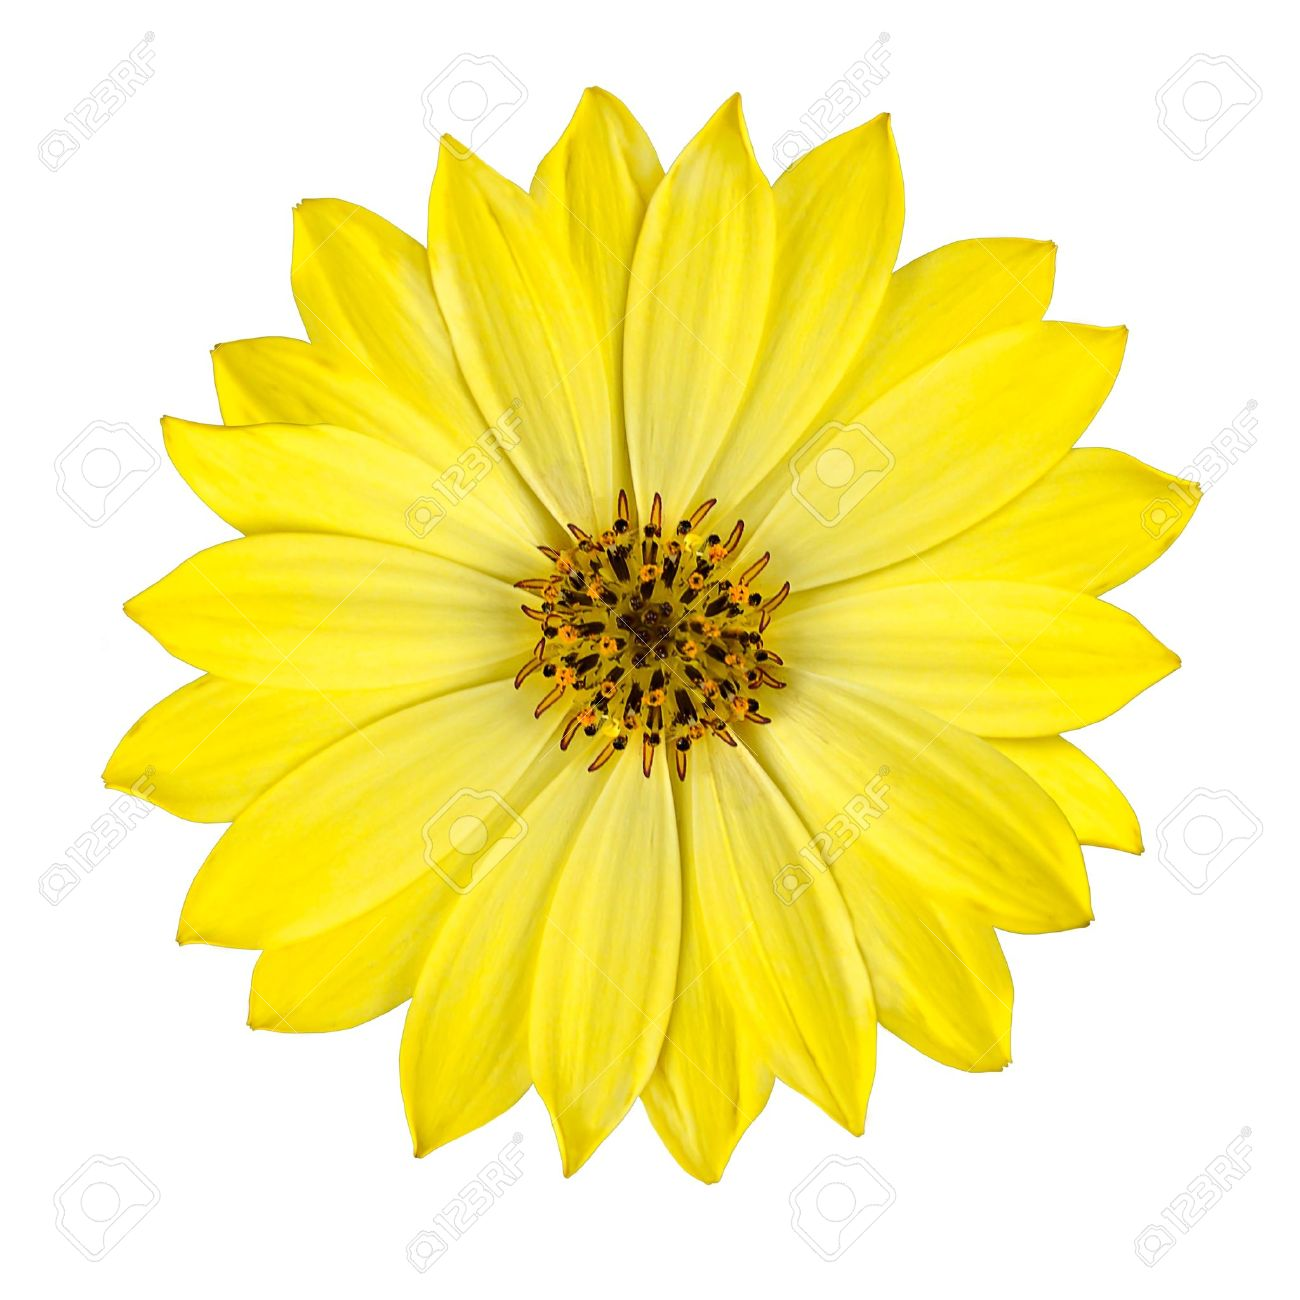 Fresh yellow osteospermum daisy flower isolated on white background fresh yellow osteospermum daisy flower isolated on white background macro closeup stock photo 9394621 izmirmasajfo